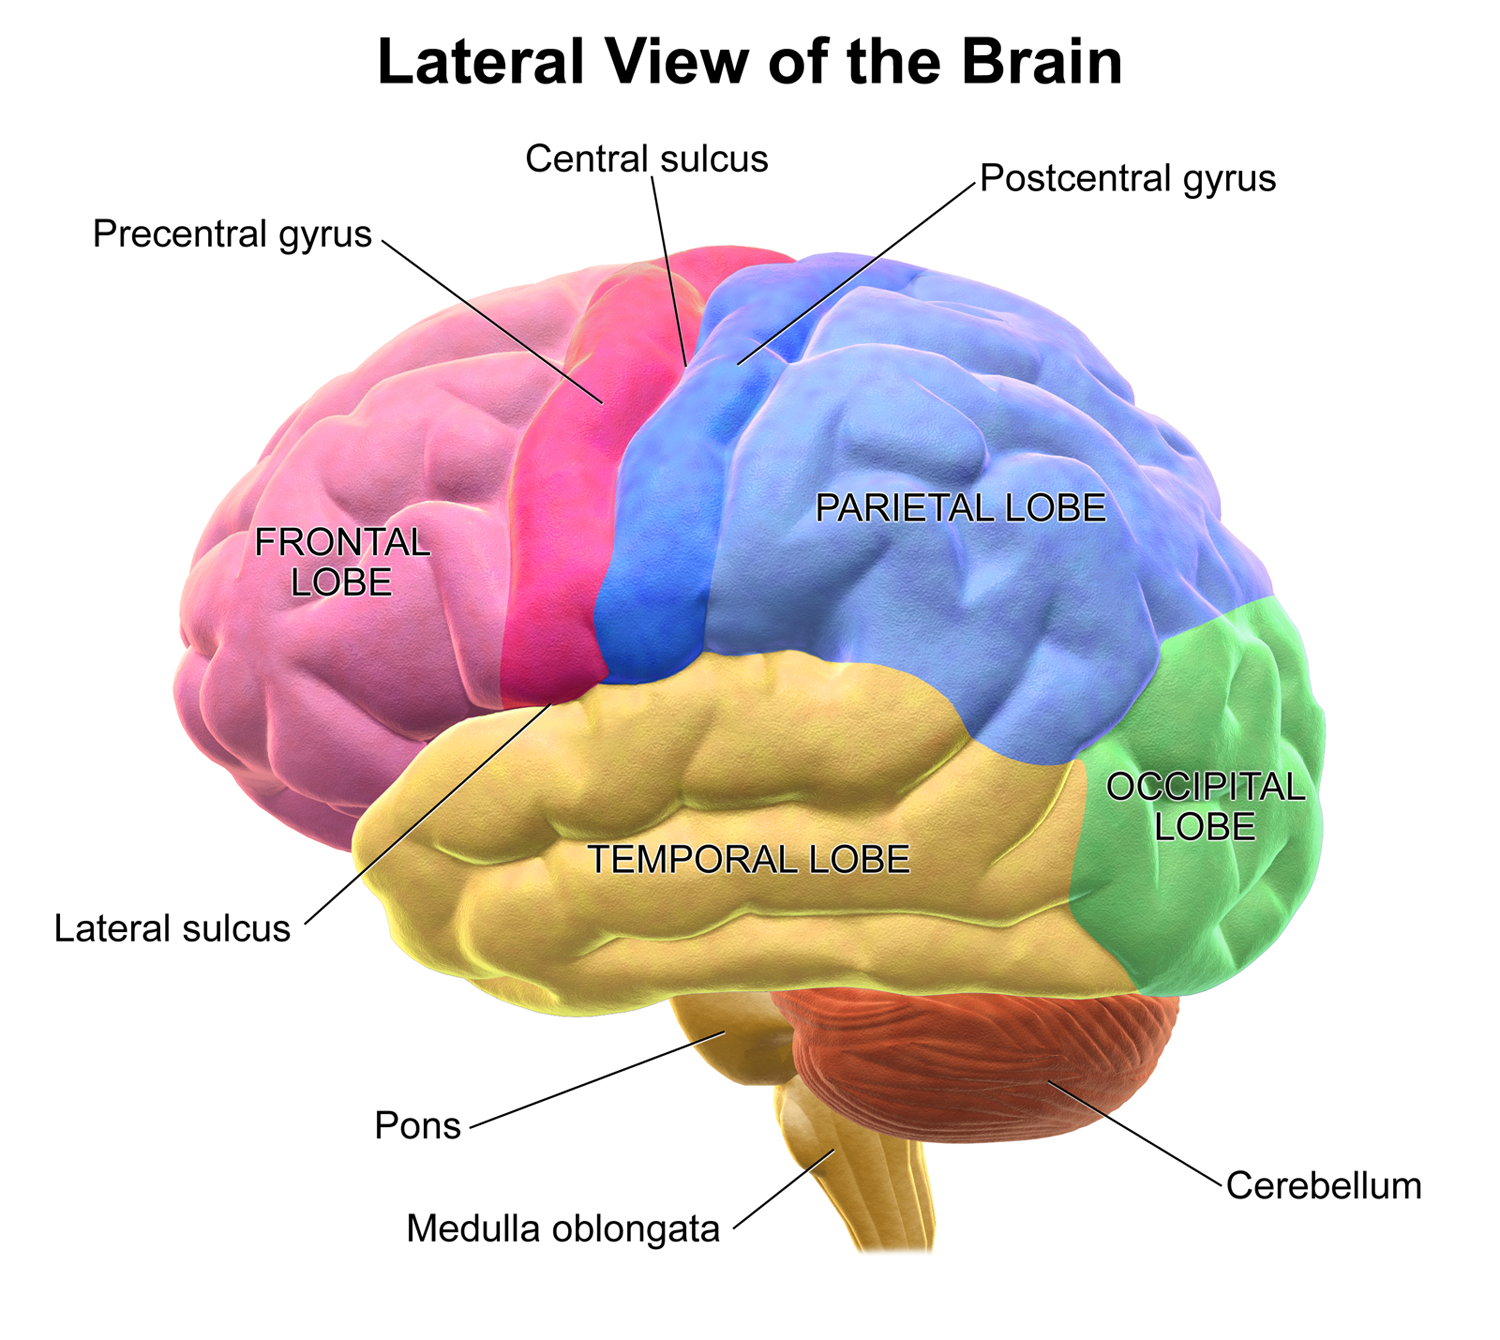 Where Is The Occipital Lobe In Relation To The Frontal Lobe Of The